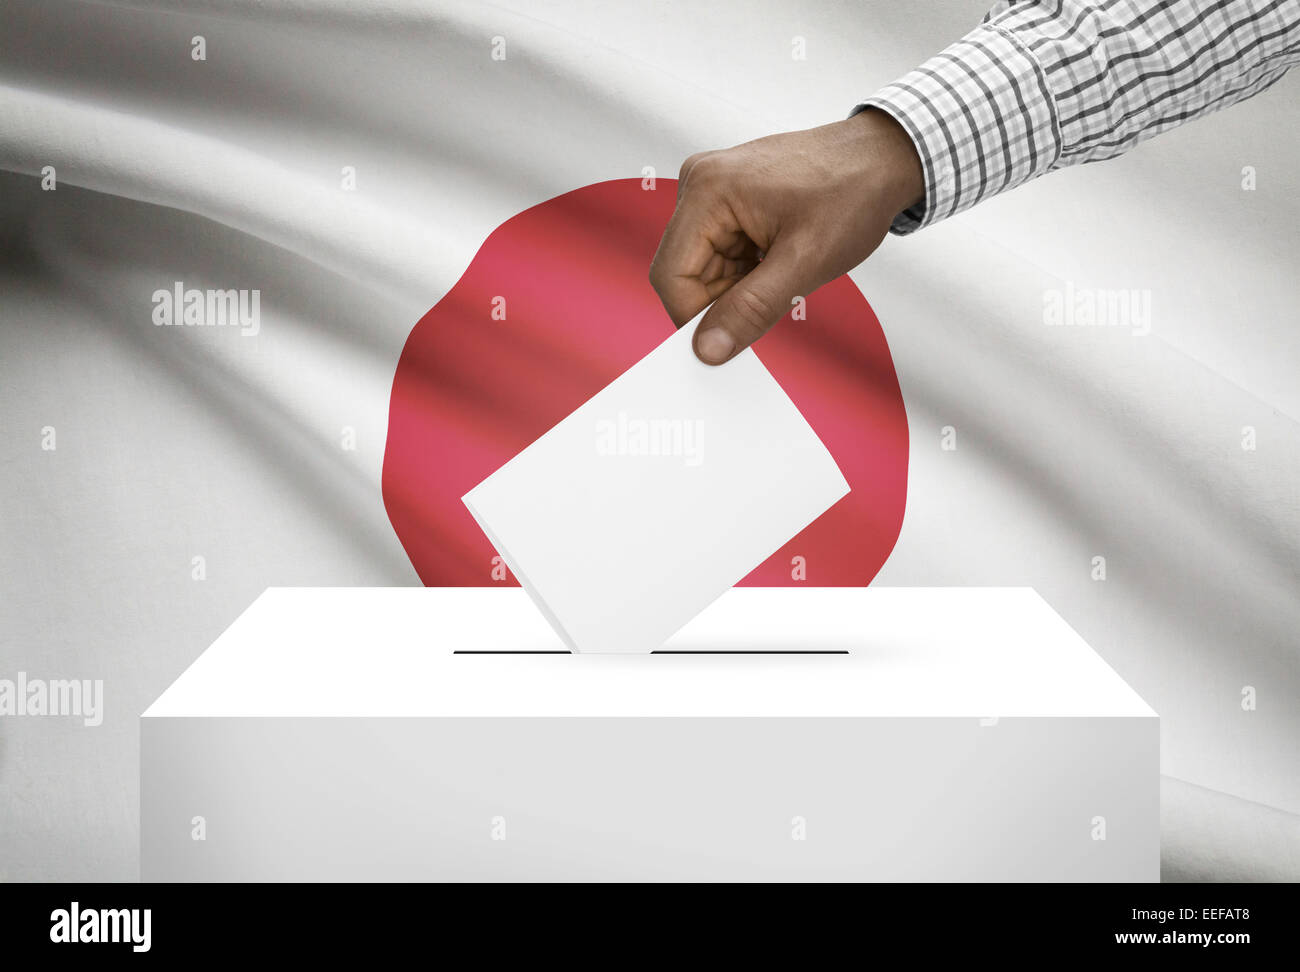 Ballot box with national flag on background - Japan Stock Photo